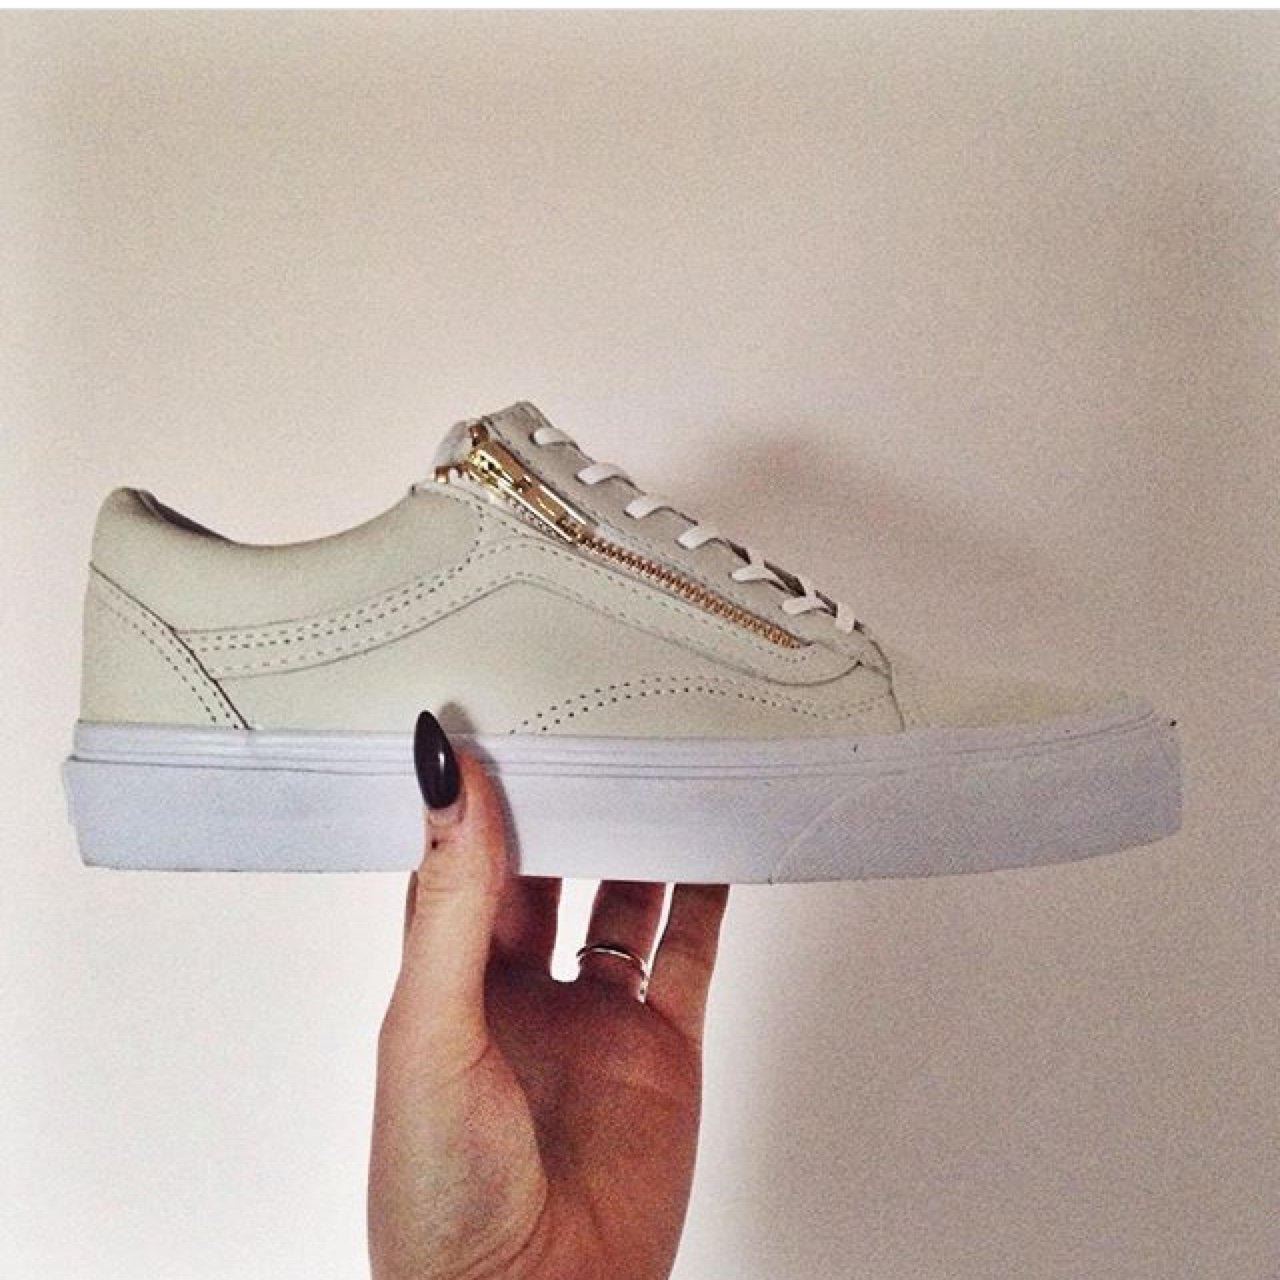 40173a22093afa Vans old skool zip in off white leather uk 5. Could also fit - Depop